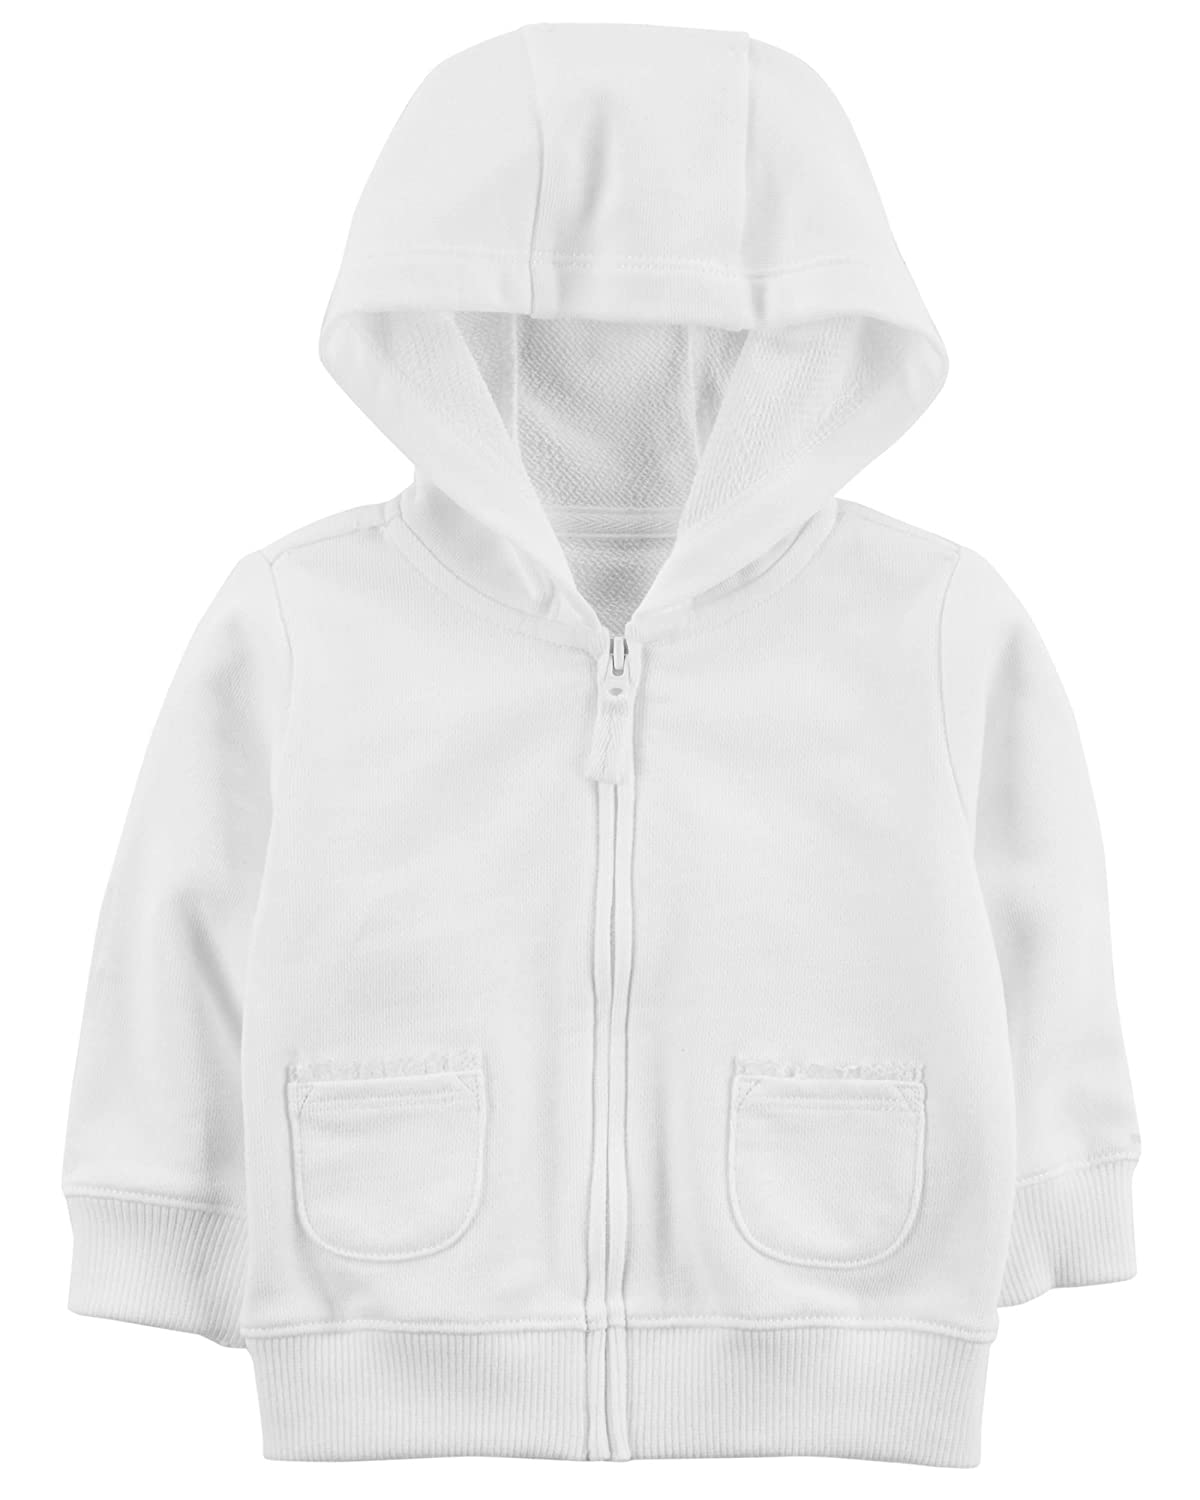 Carter's Baby Girls' French Terry Hoodie Carter' s